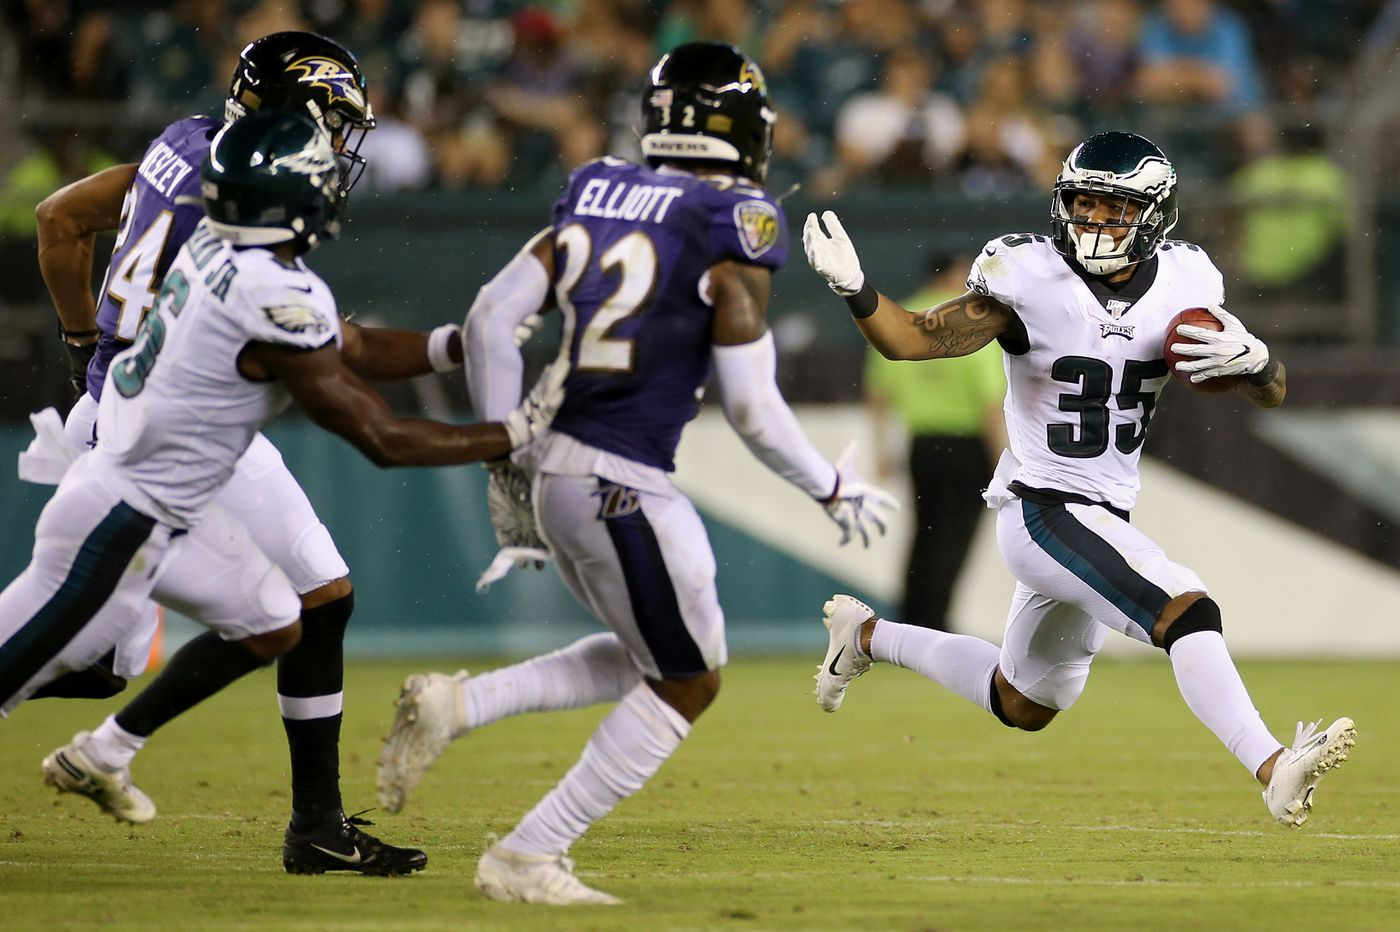 Eagles cut former fourth-round pick Donnel Pumphrey